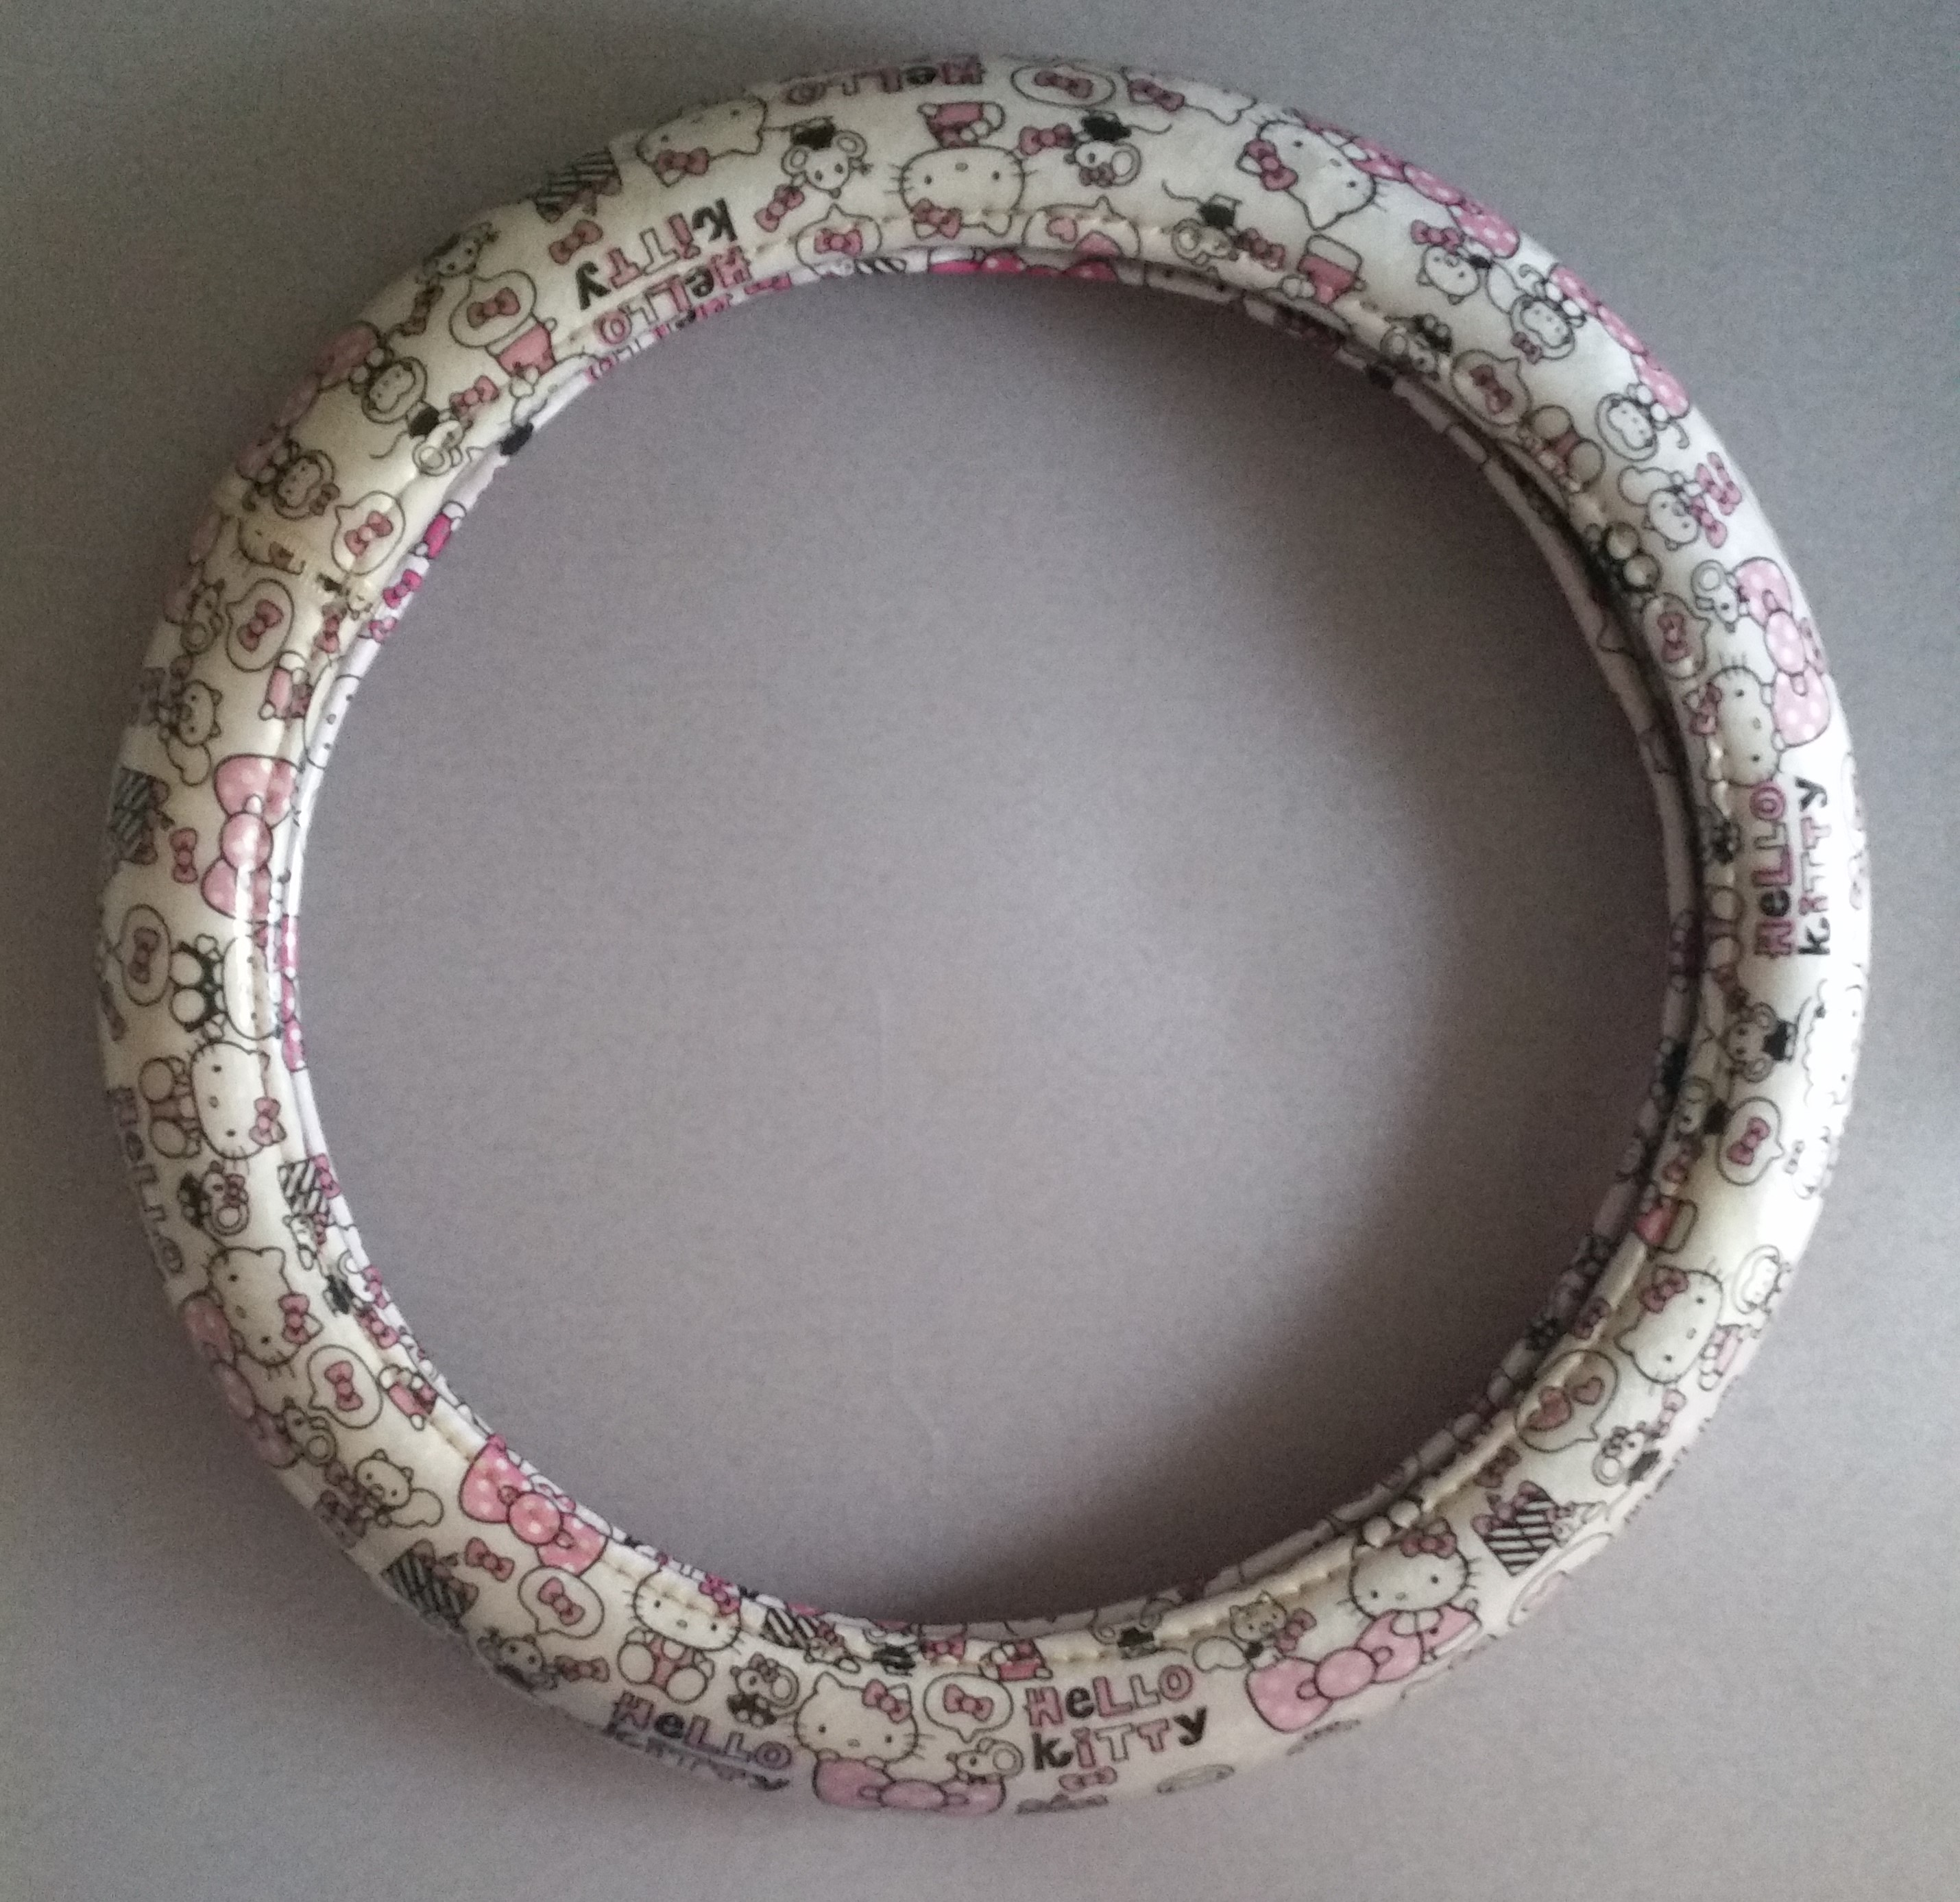 081700431 Pre-Owned Steering Wheel Cover for compact cars - $10